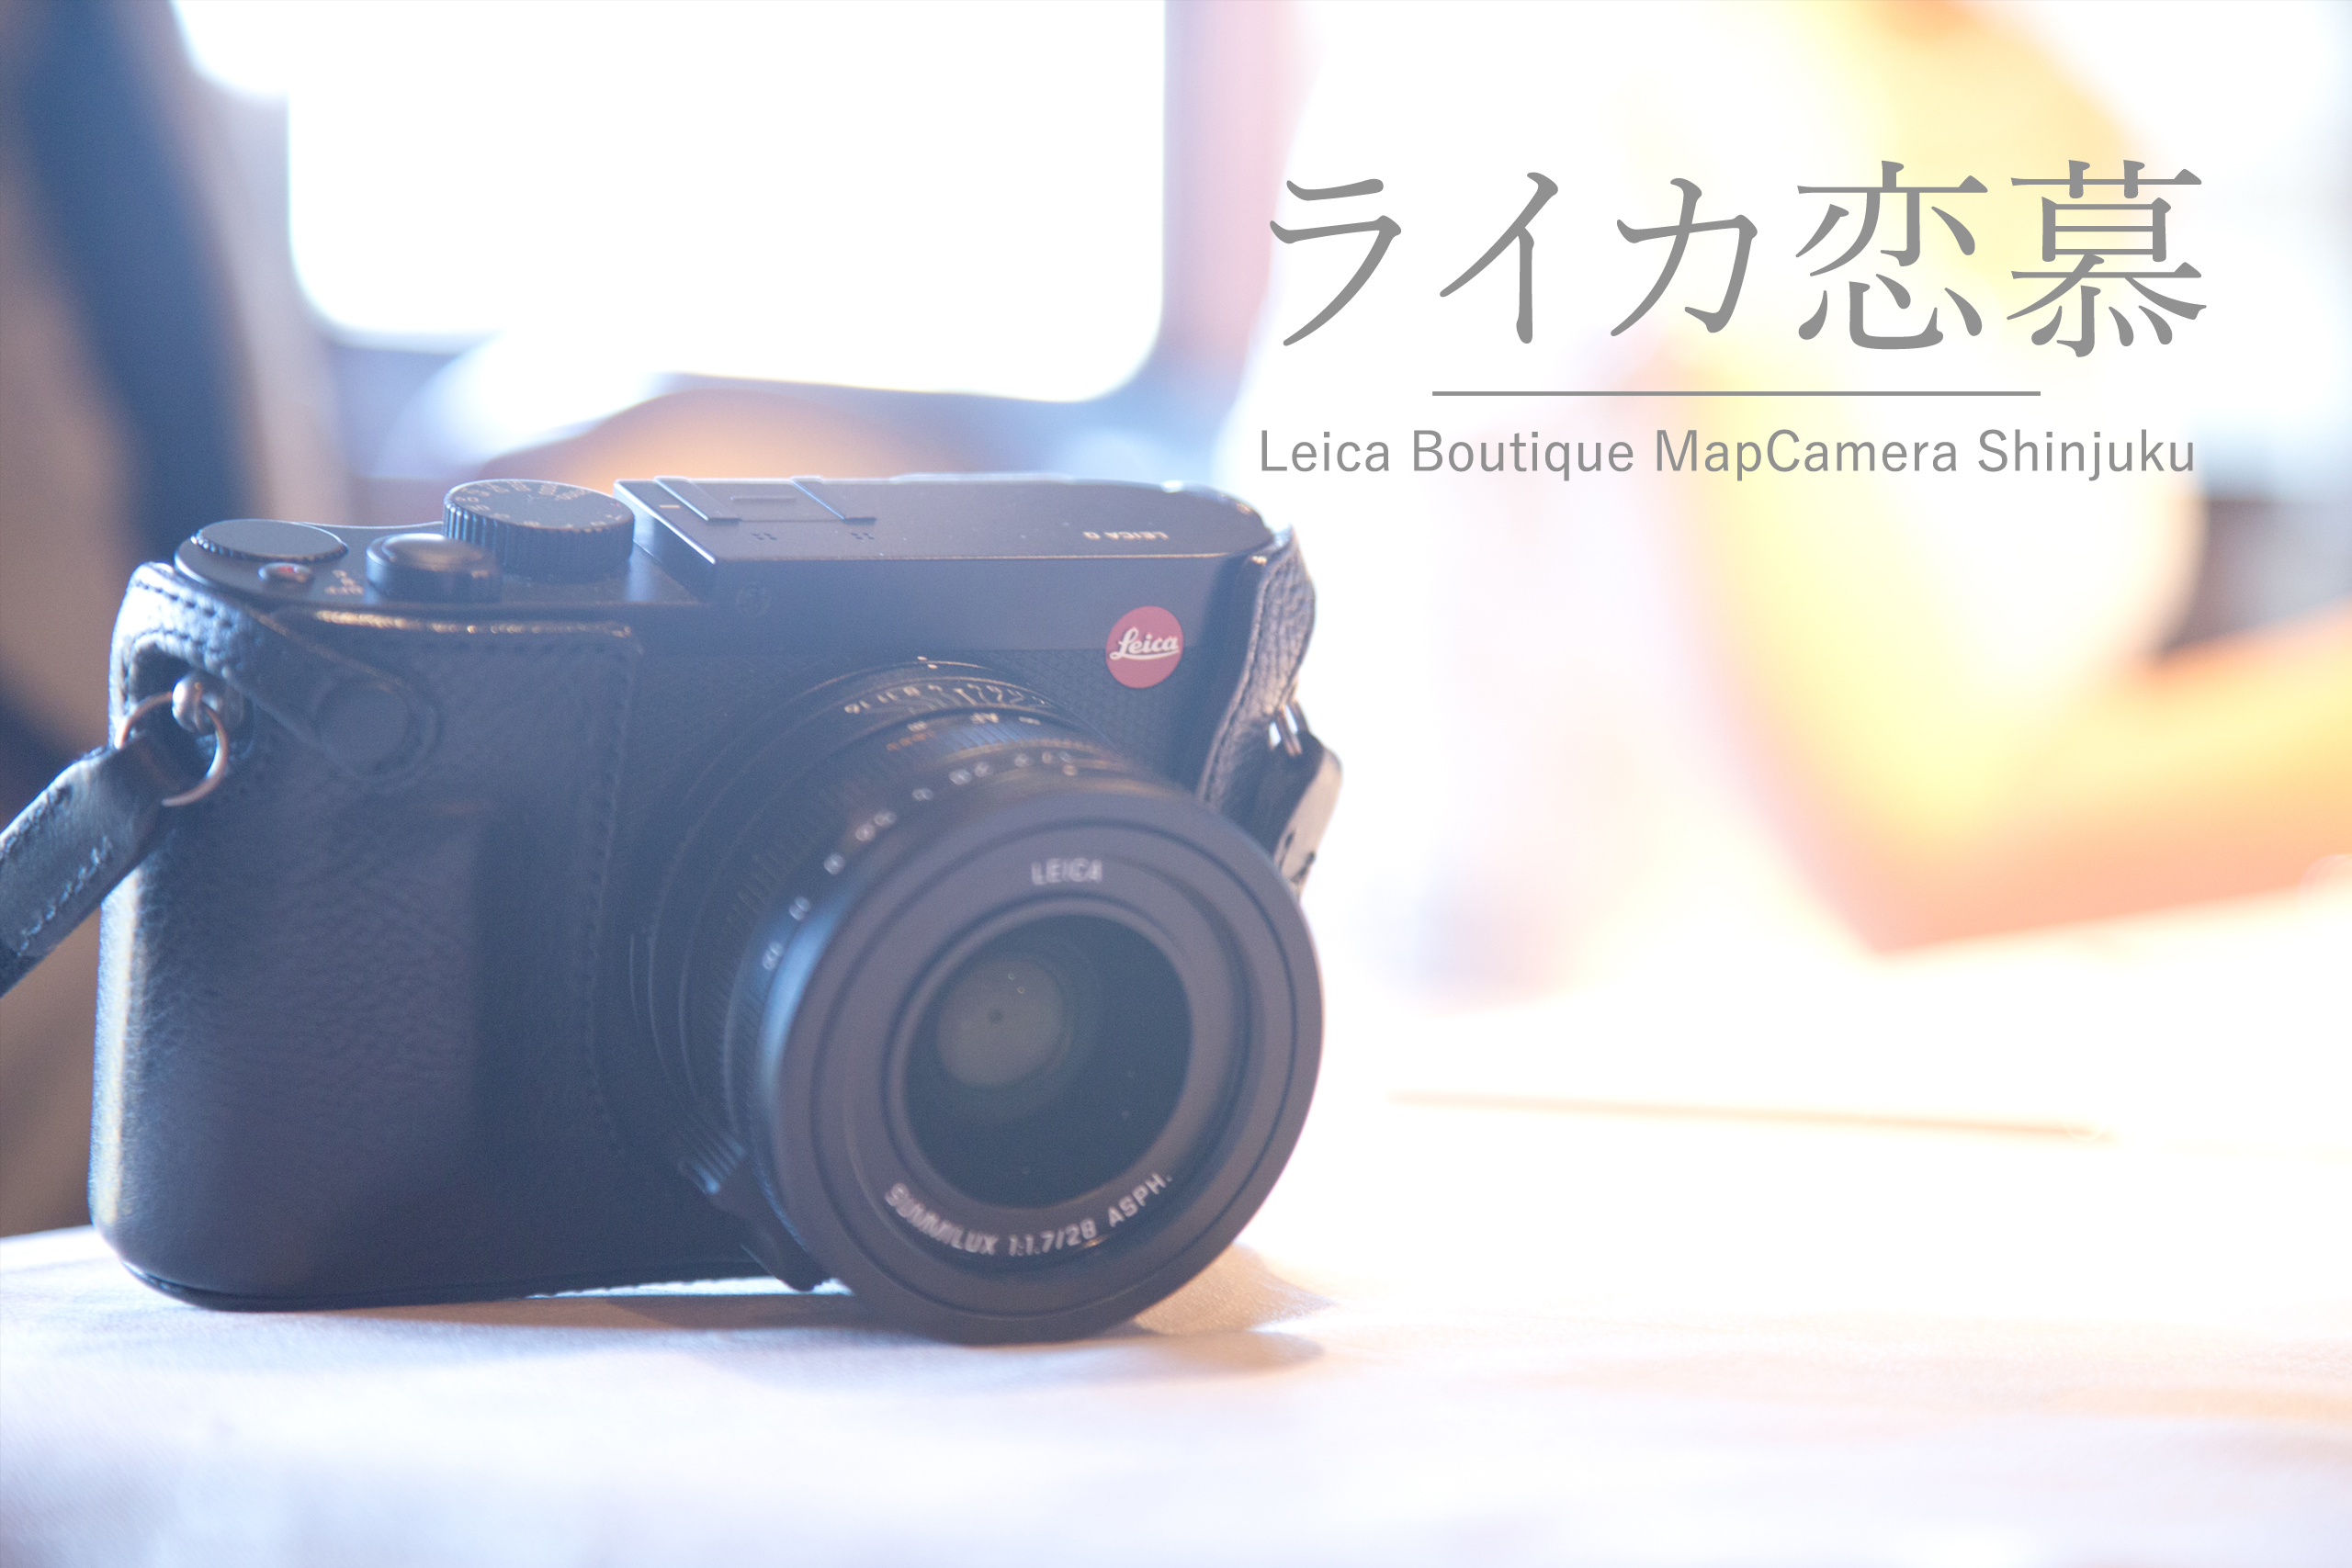 【Leica Boutique MapCamera Shinjuku 8th】私のQ愛